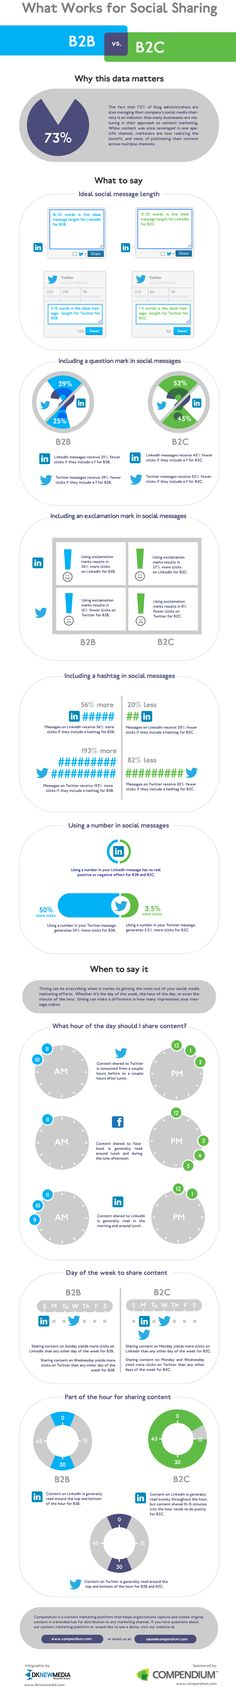 Why you should never, ever use a question mark on Twitter or LinkedI  Read more at http://venturebeat.com/2012/10/02/why-you-should-never-ever-use-a-question-mark-on-twitter-or-linkedin-infographic/#A0E79JruQDRBdLvh.99